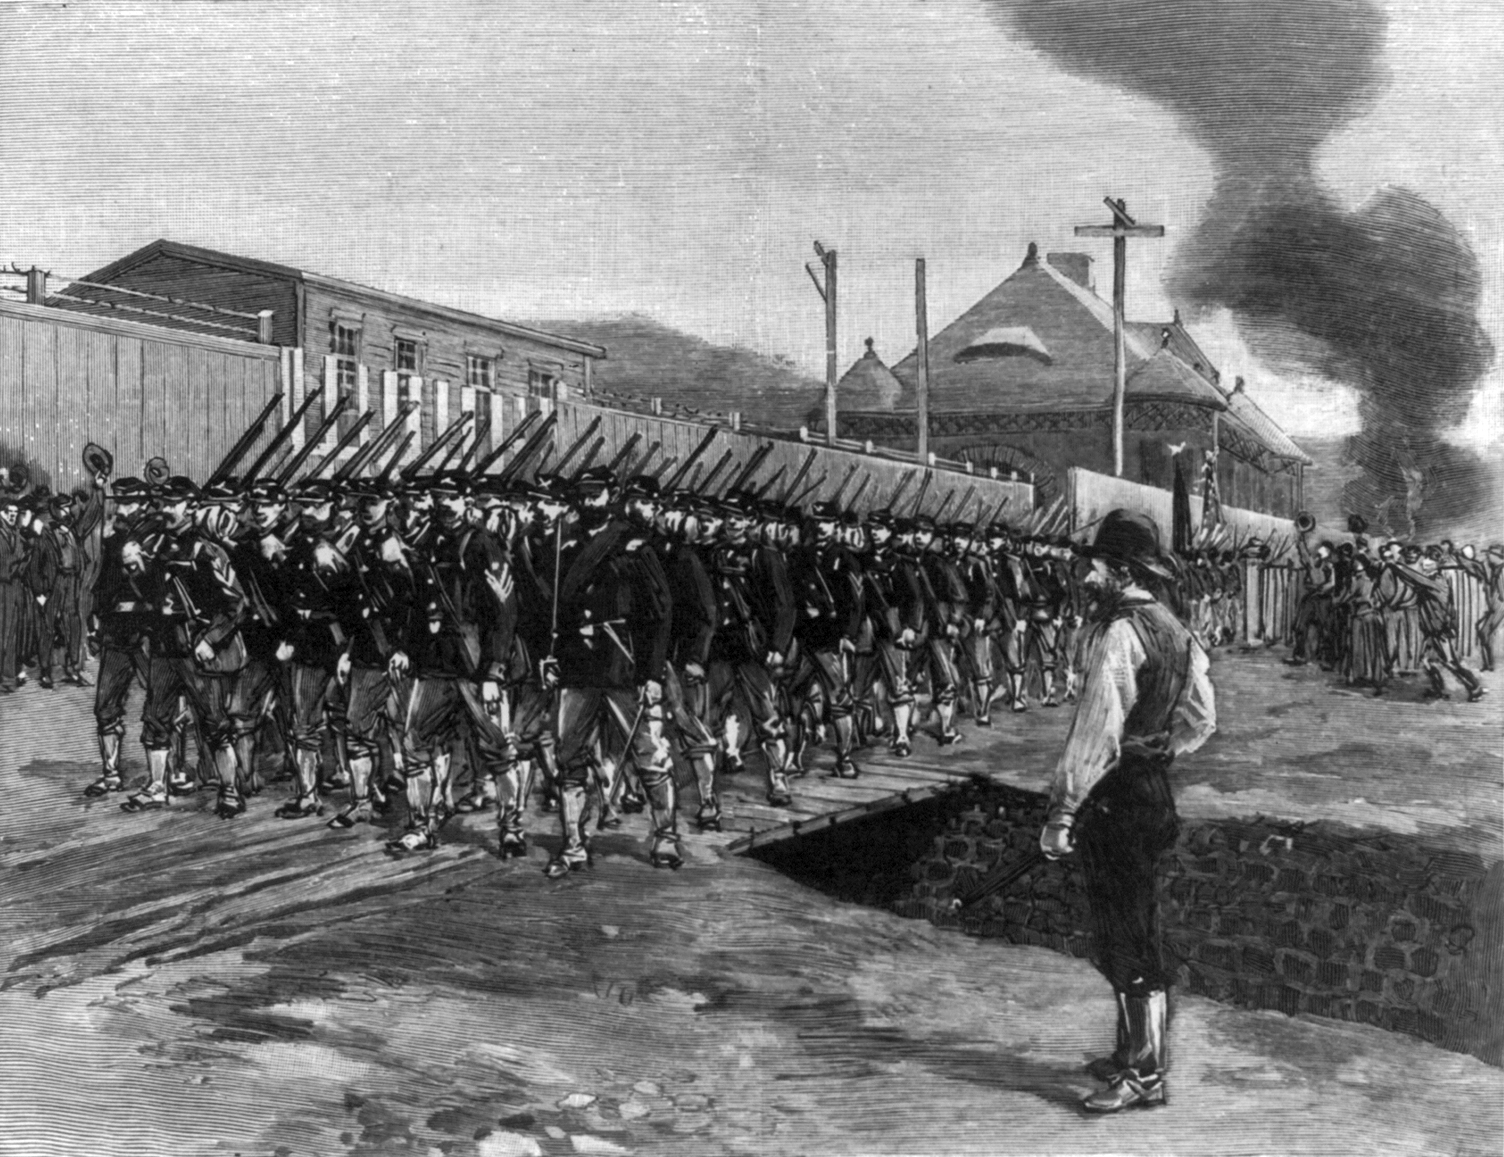 Pullman strike of 1894 thesis statment